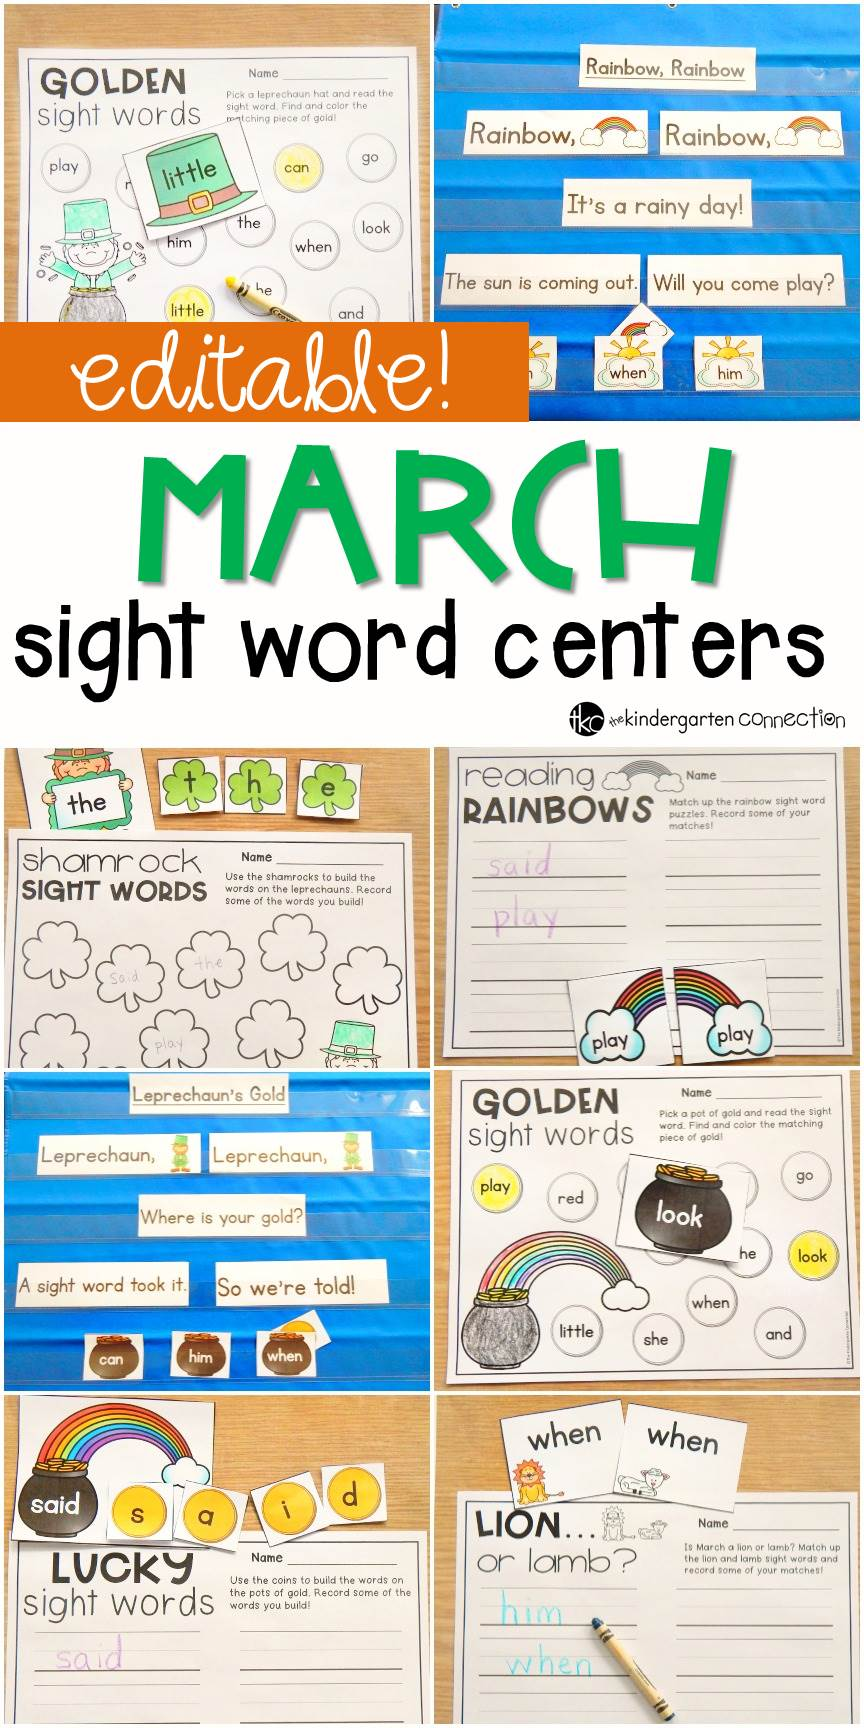 Fun sight word centers for March that are EDITABLE for any word list!